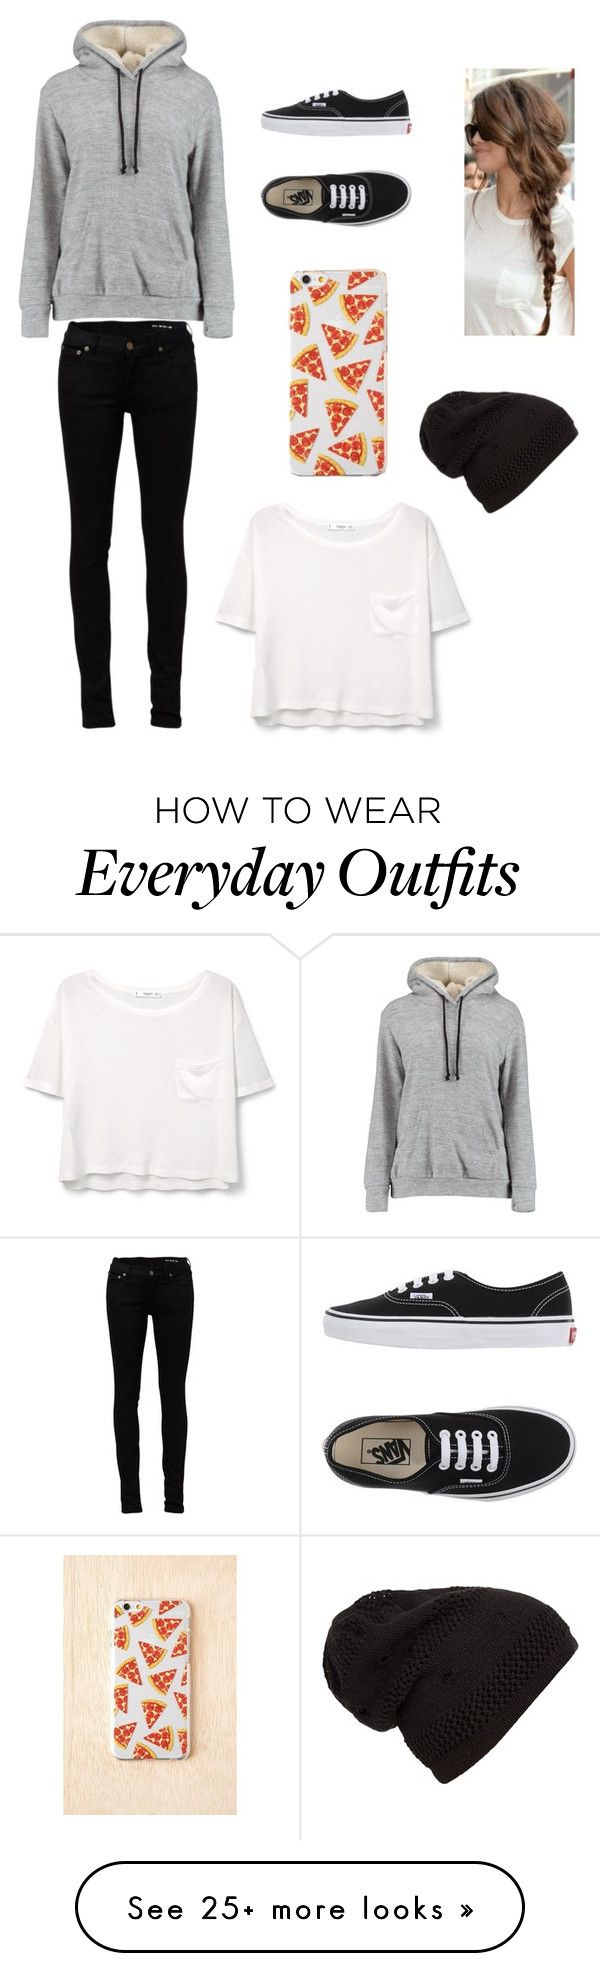 """everyday outfit for school"" by marilyn341 on Polyvore featuring Mode, Yves Saint Laurent, Vans und MANGO"